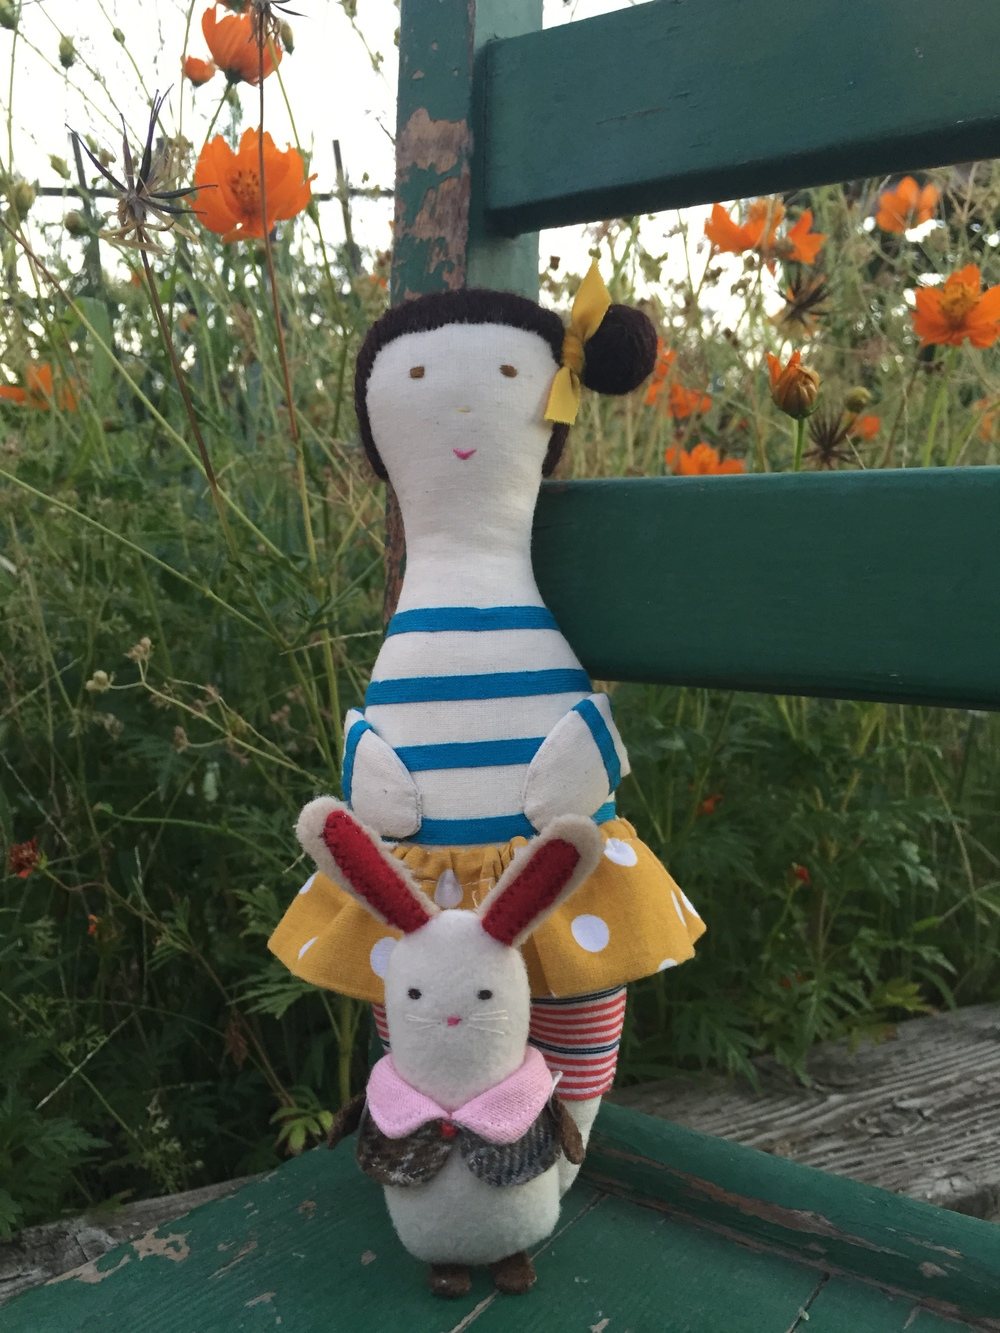 Both softies are handmade by matildebeldroega.